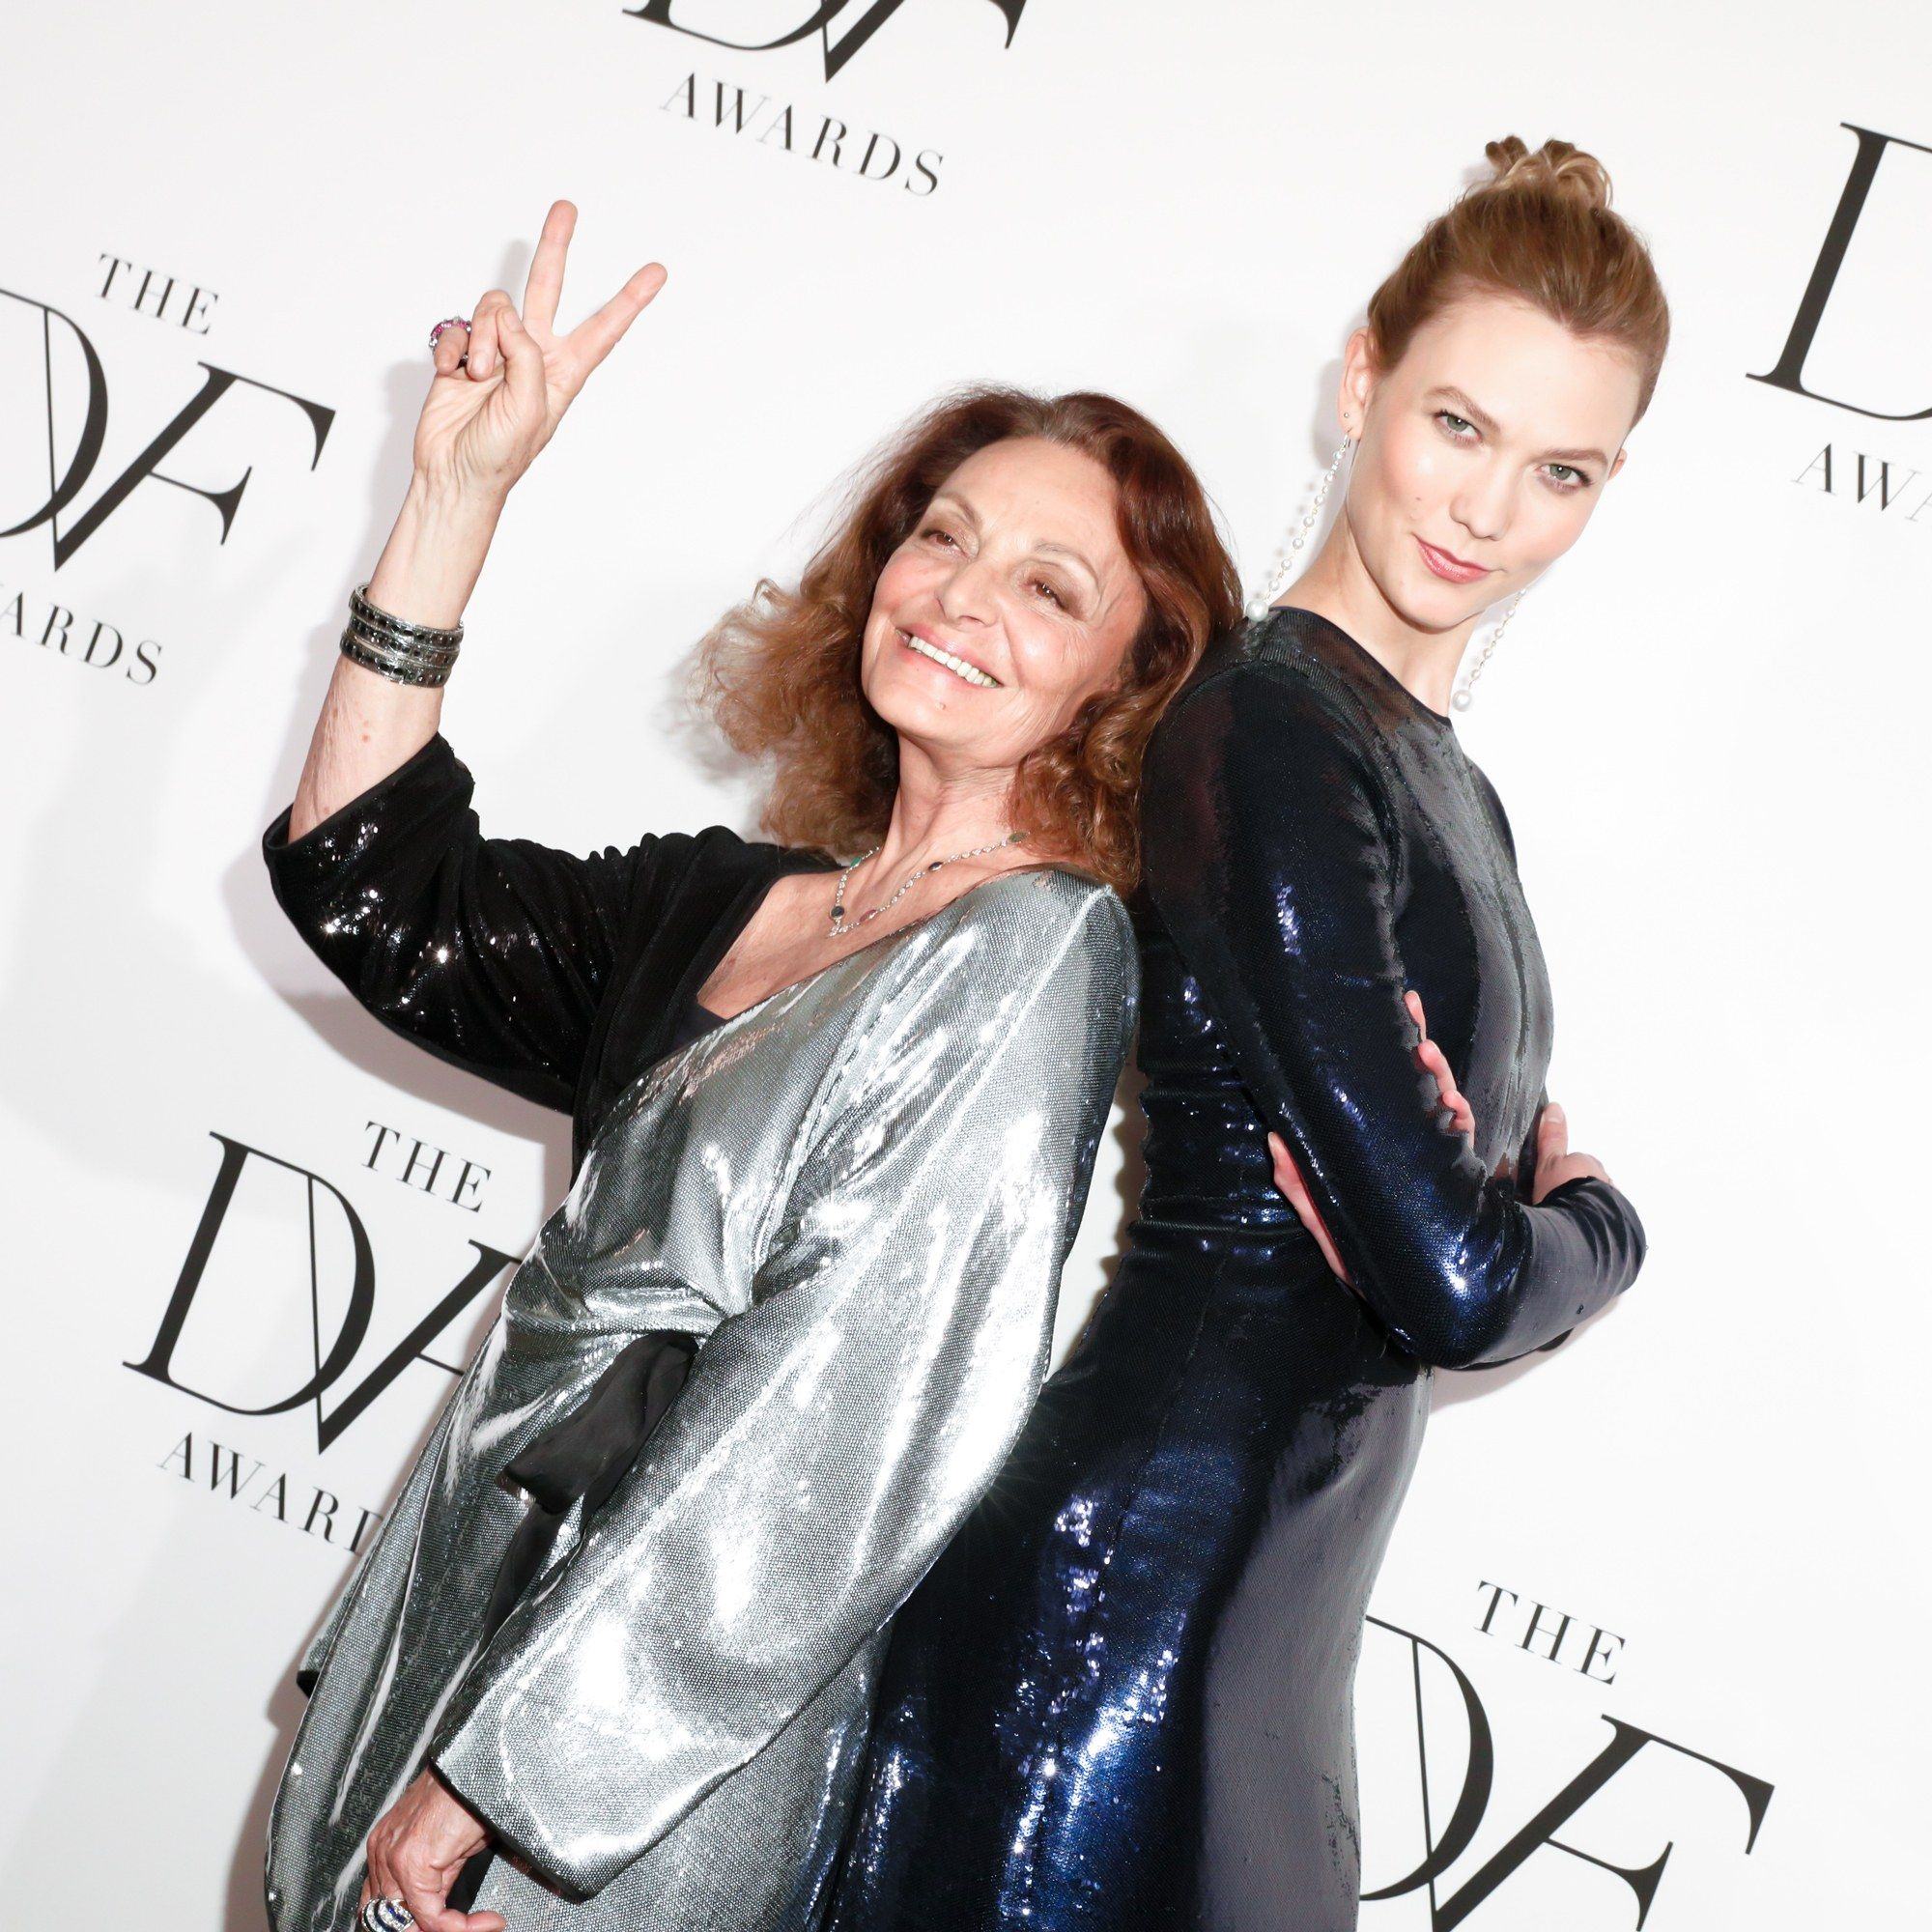 Karlie Kloss, Allison Williams, Seth Meyers, and More Attend the DVF Awards at the United Nations